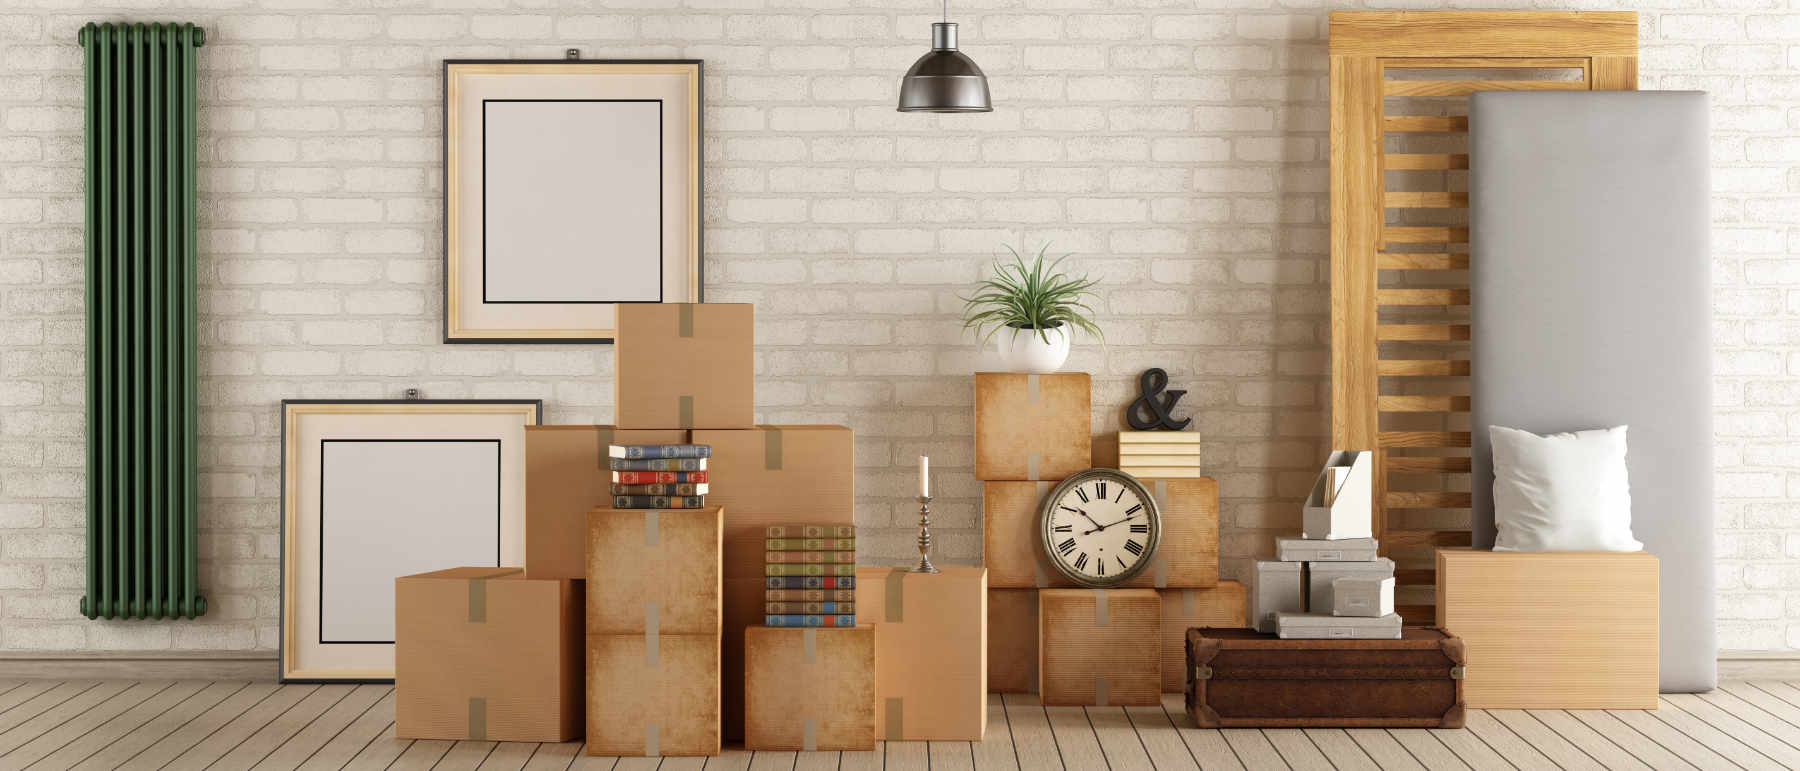 Image of moving into a new home as concept for wise living over 50s buying & selling property guides - from choosing the best estate agents to hiring removal companies